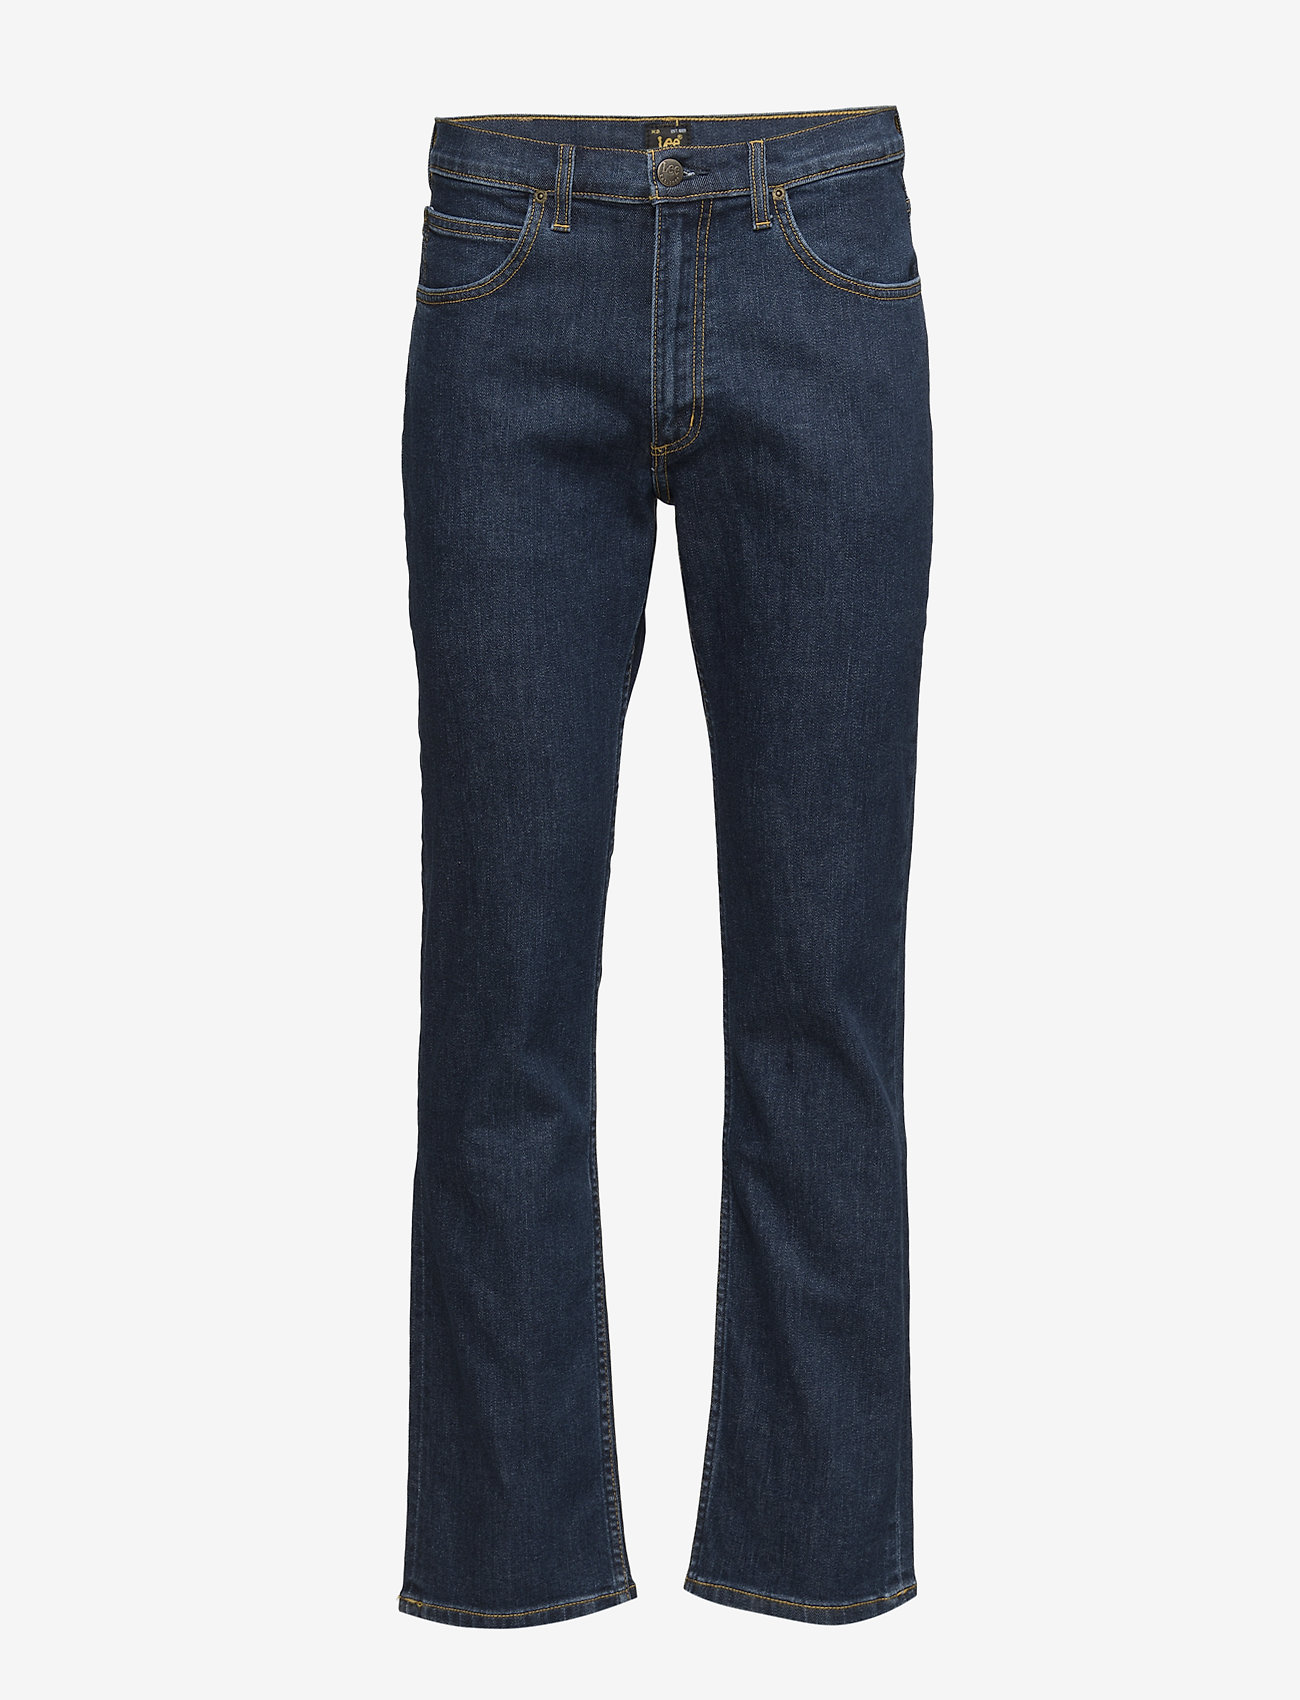 Lee Jeans - BROOKLYN STRAIGHT - relaxed jeans - dark stonewash - 0